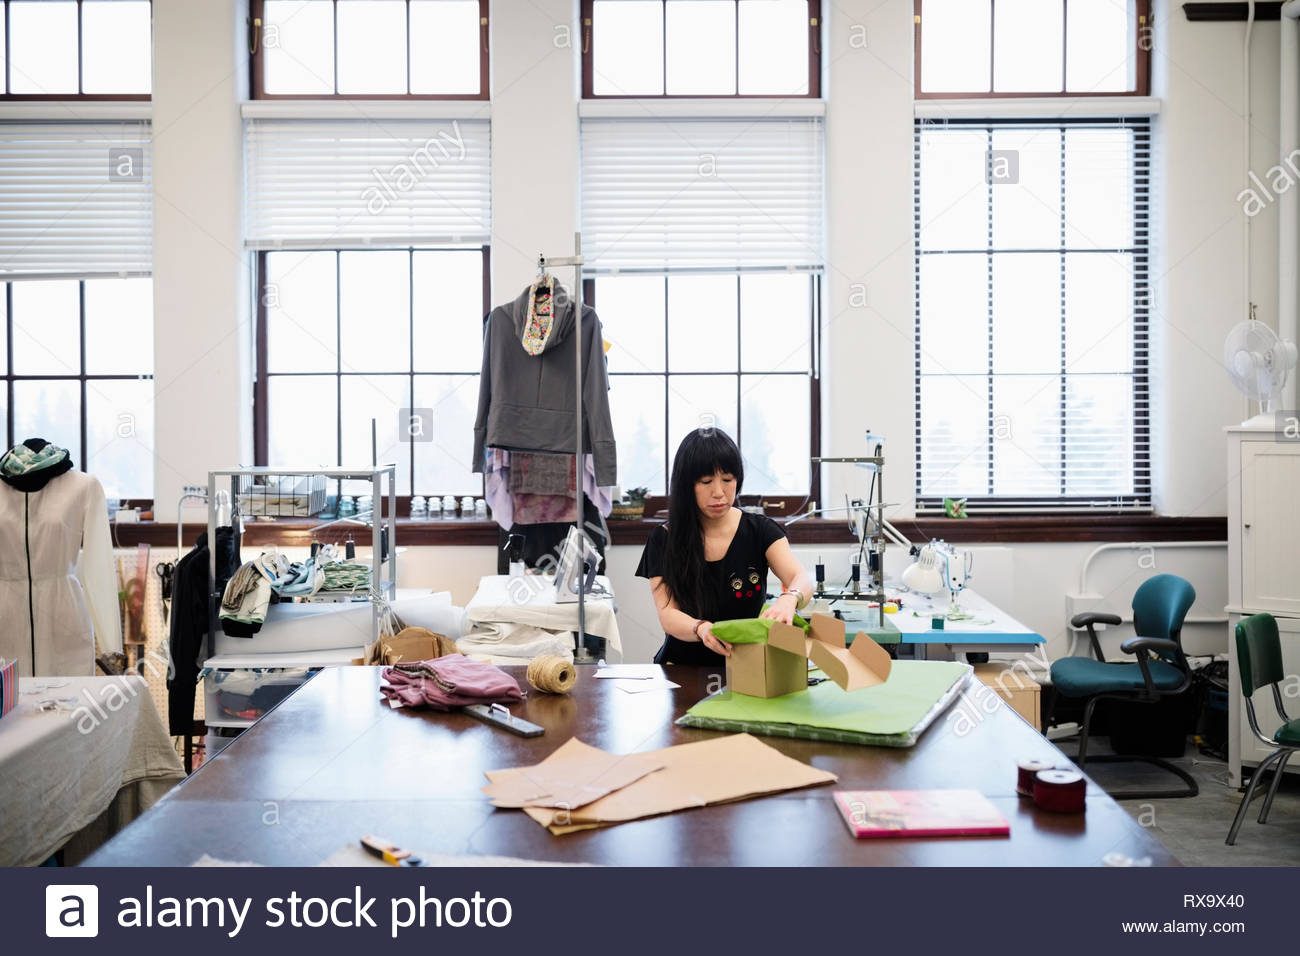 Female fashion designer packaging product in studio - Stock Image